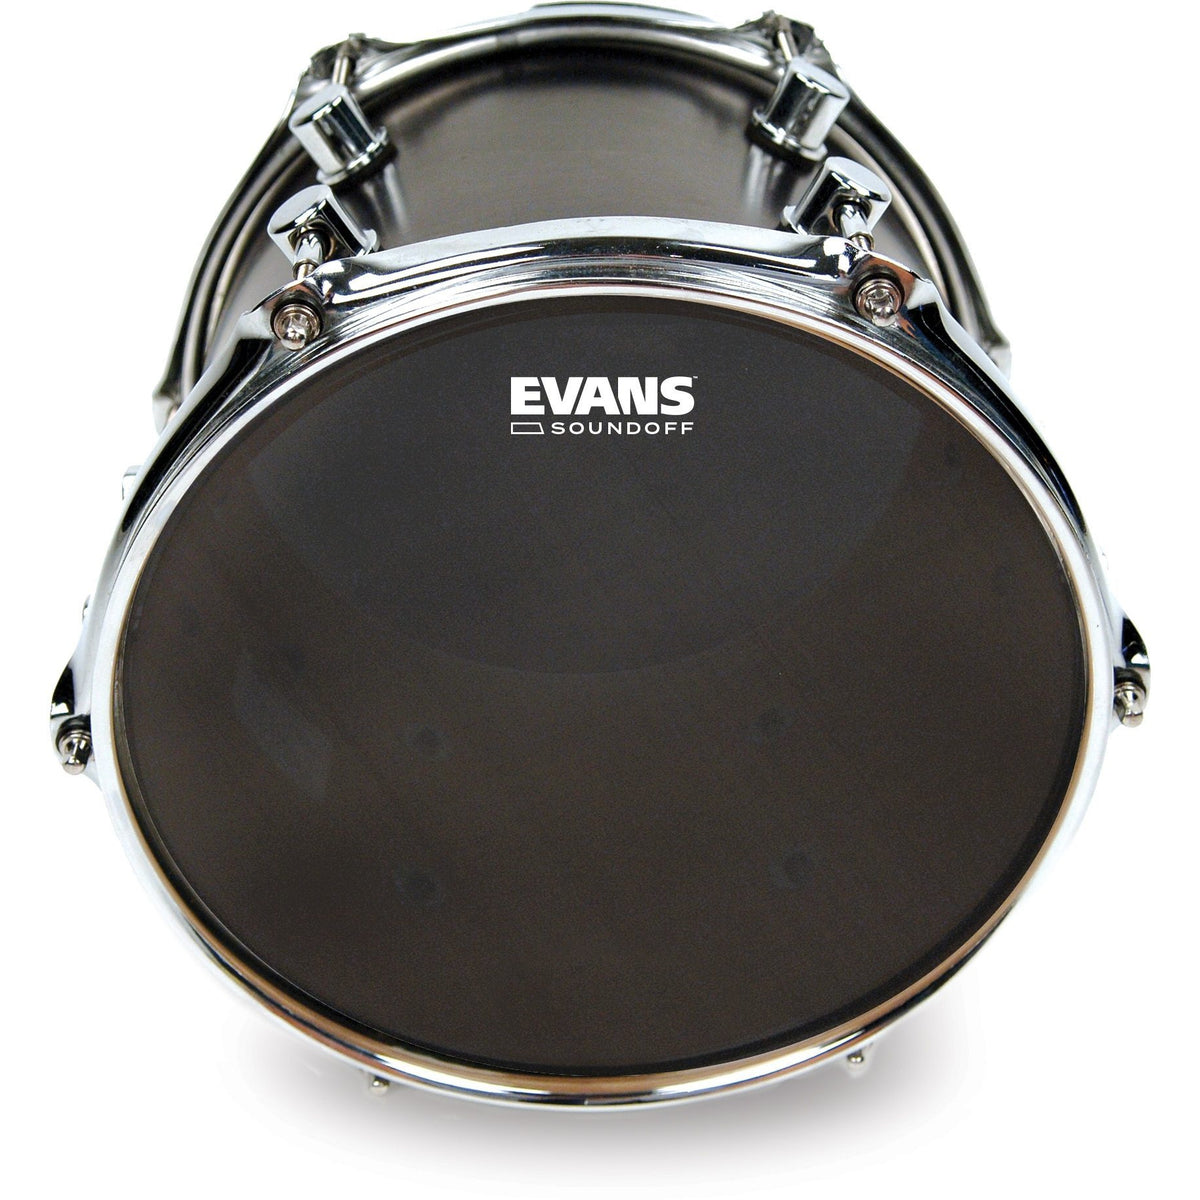 Evans SoundOff Tom Batter Mesh Drumhead, Black, 13 Inch